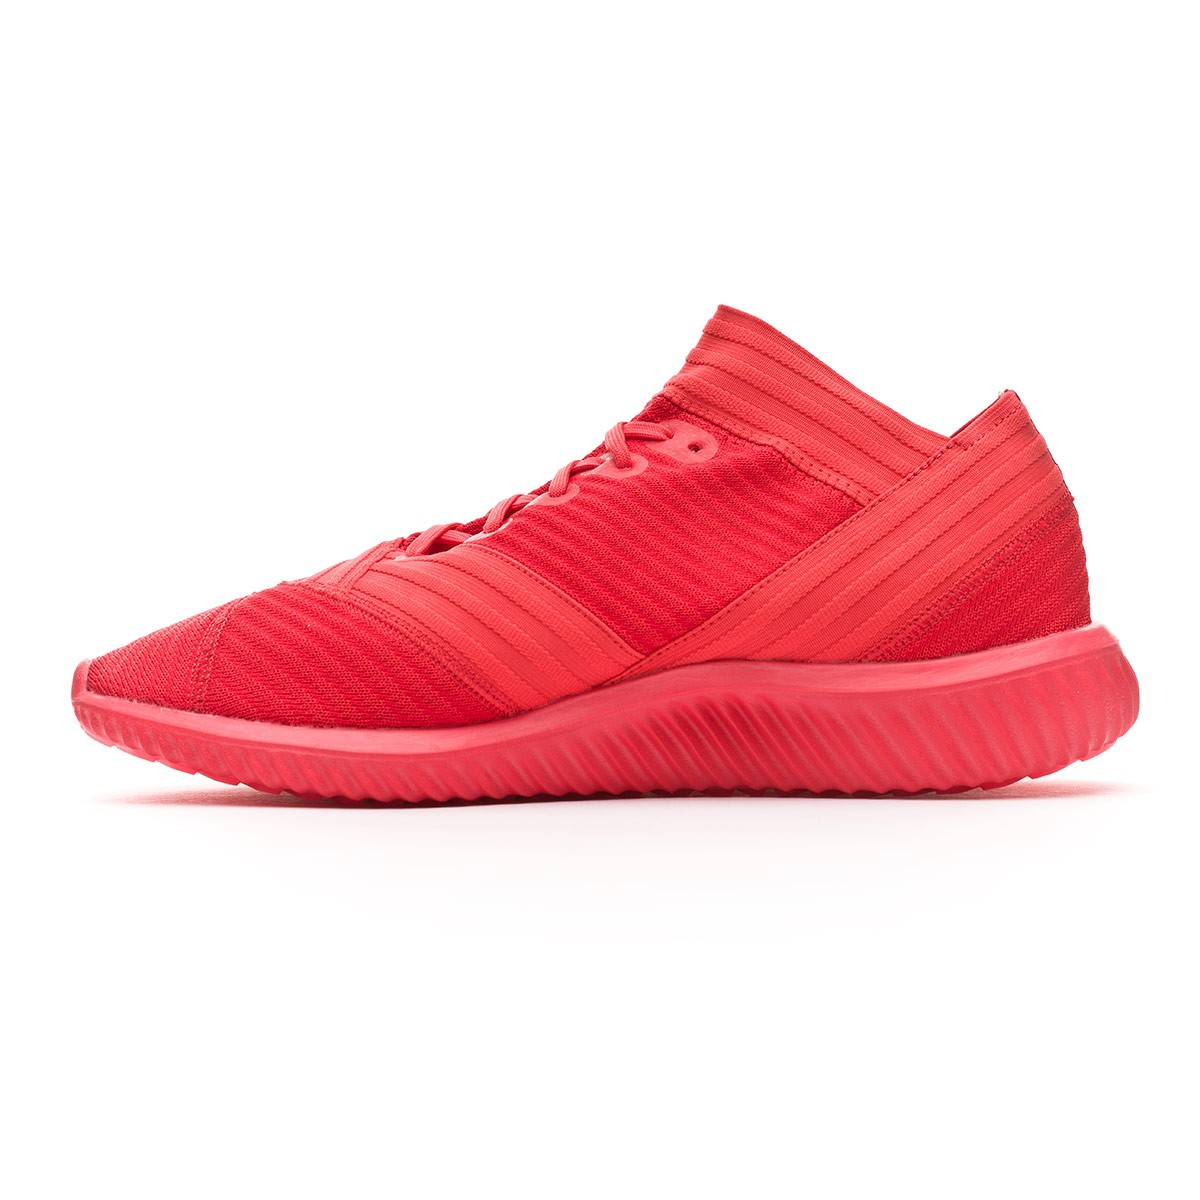 dc9b21997fcc Trainers adidas Nemeziz Tango 17.1 TR Real coral-Red zest - Football store  Fútbol Emotion